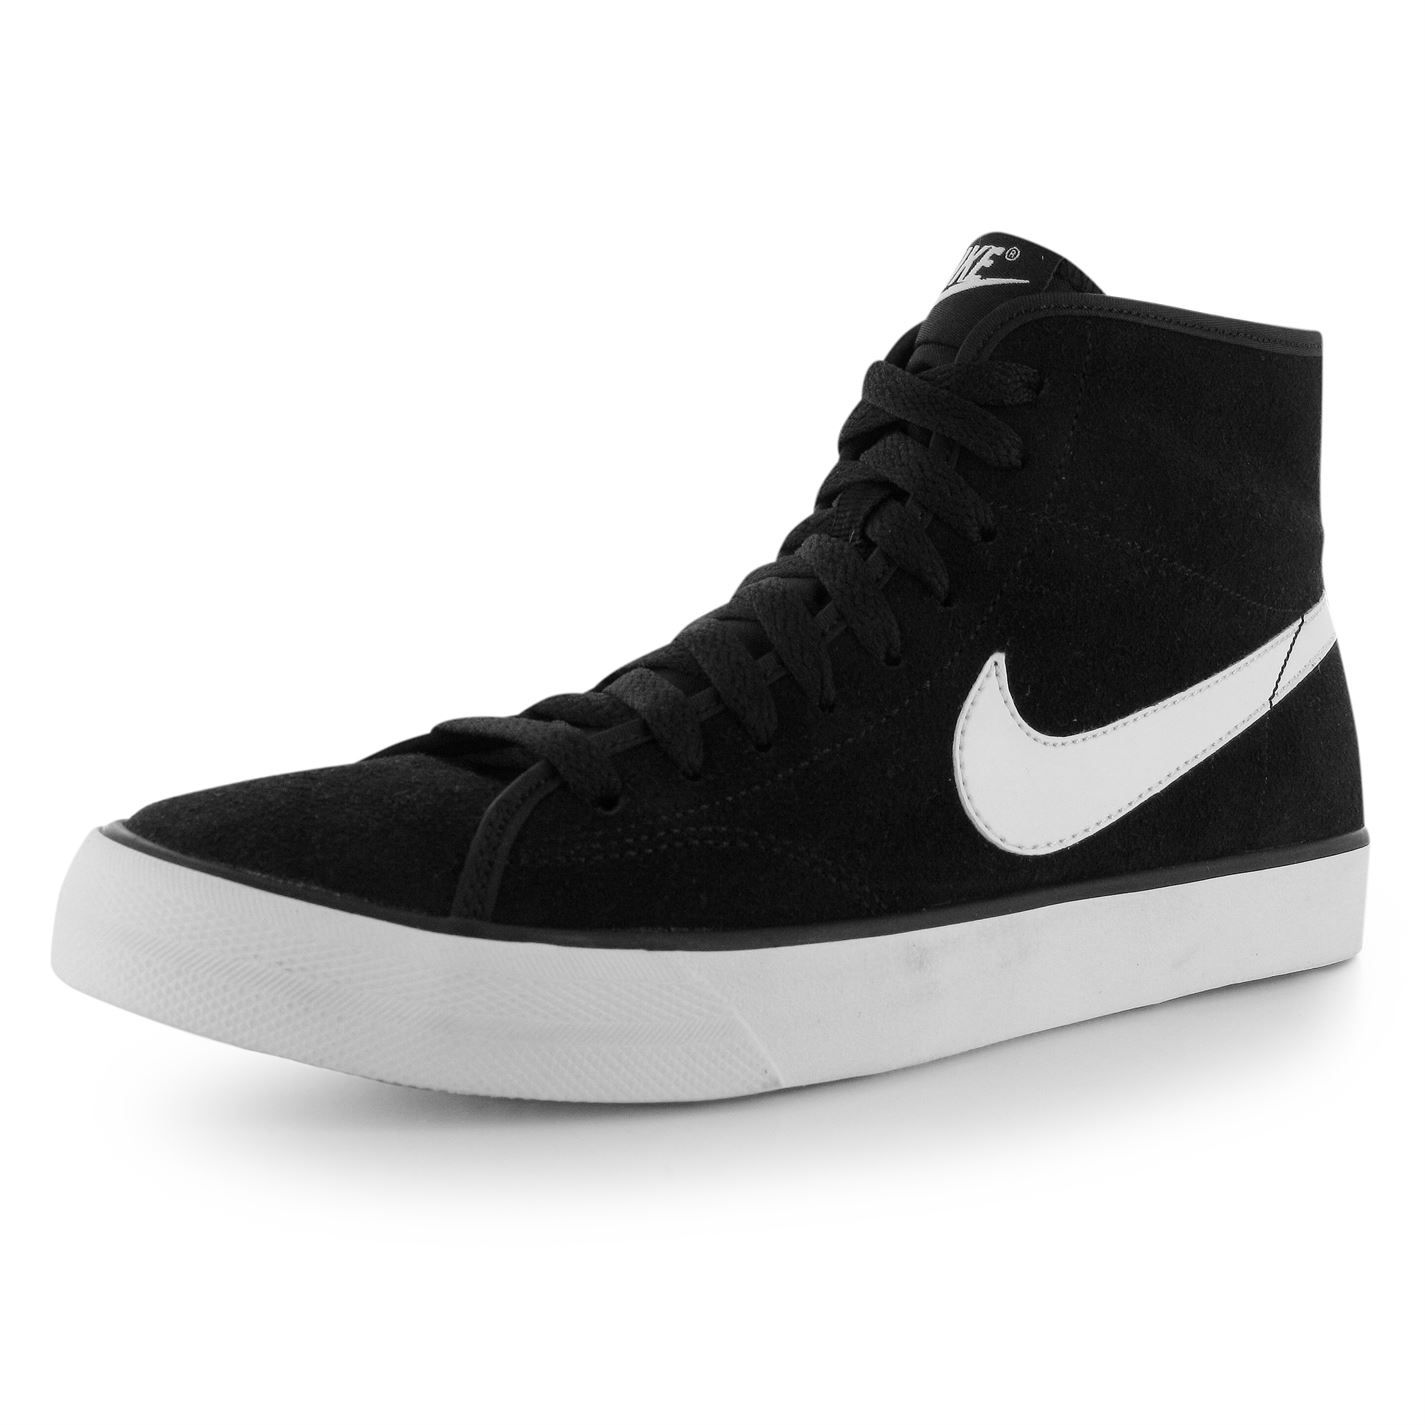 Nike Primo Suede Mid Top Women's Training Shoes Black/White